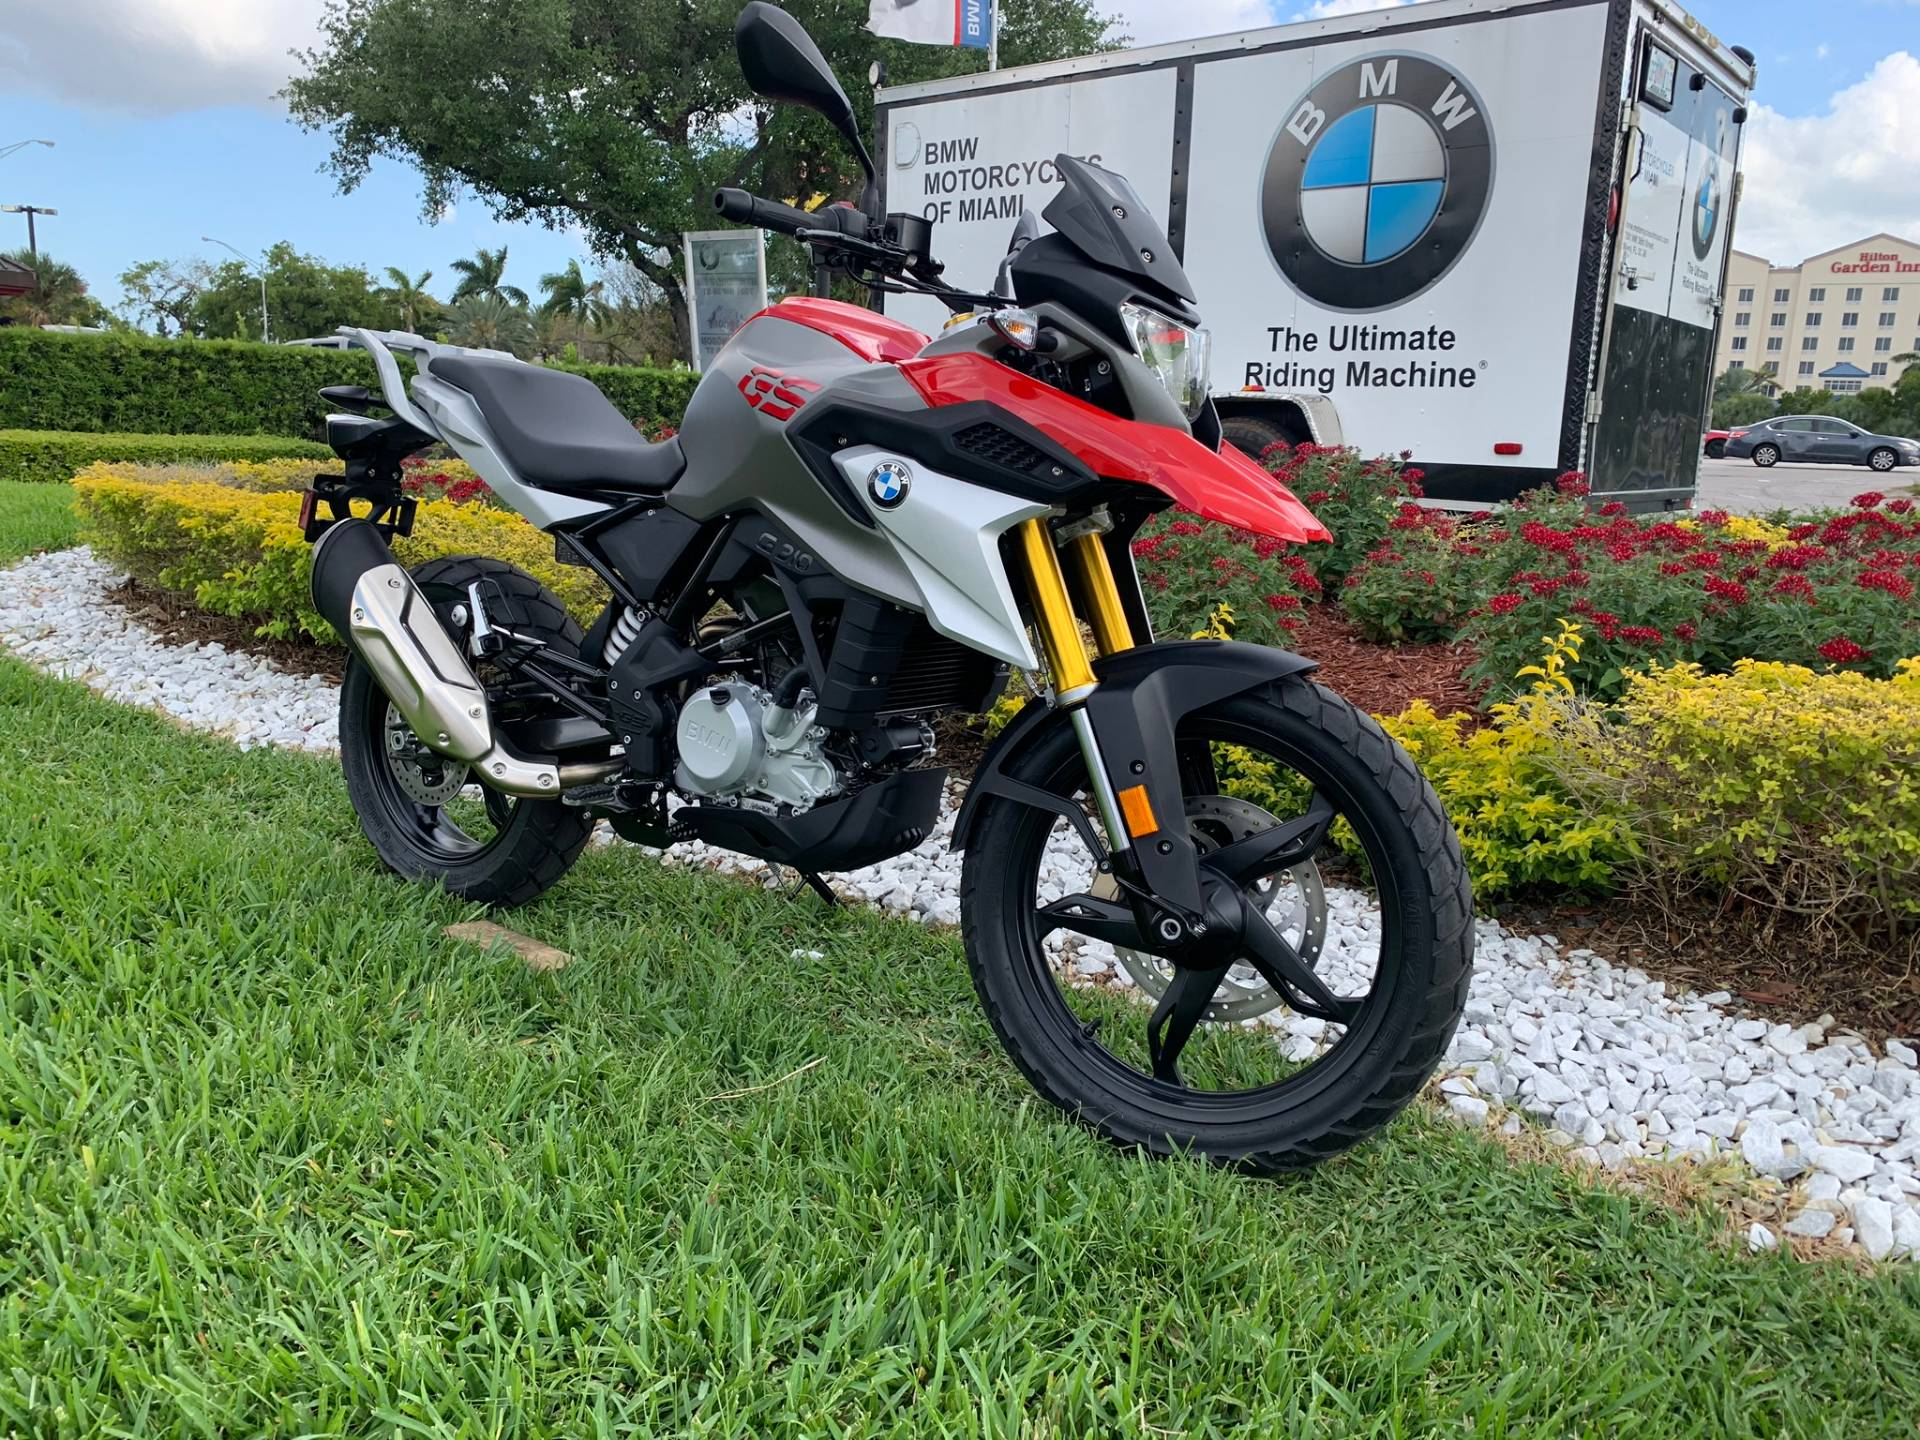 New 2019 BMW G 310 GS for sale, BMW G 310GS for sale, BMW Motorcycle GS, new BMW GS, Spirit of GS, BMW Motorcycles of Miami, Motorcycles of Miami, Motorcycles Miami, New Motorcycles, Used Motorcycles, pre-owned. #BMWMotorcyclesOfMiami #MotorcyclesOfMiami. - Photo 13